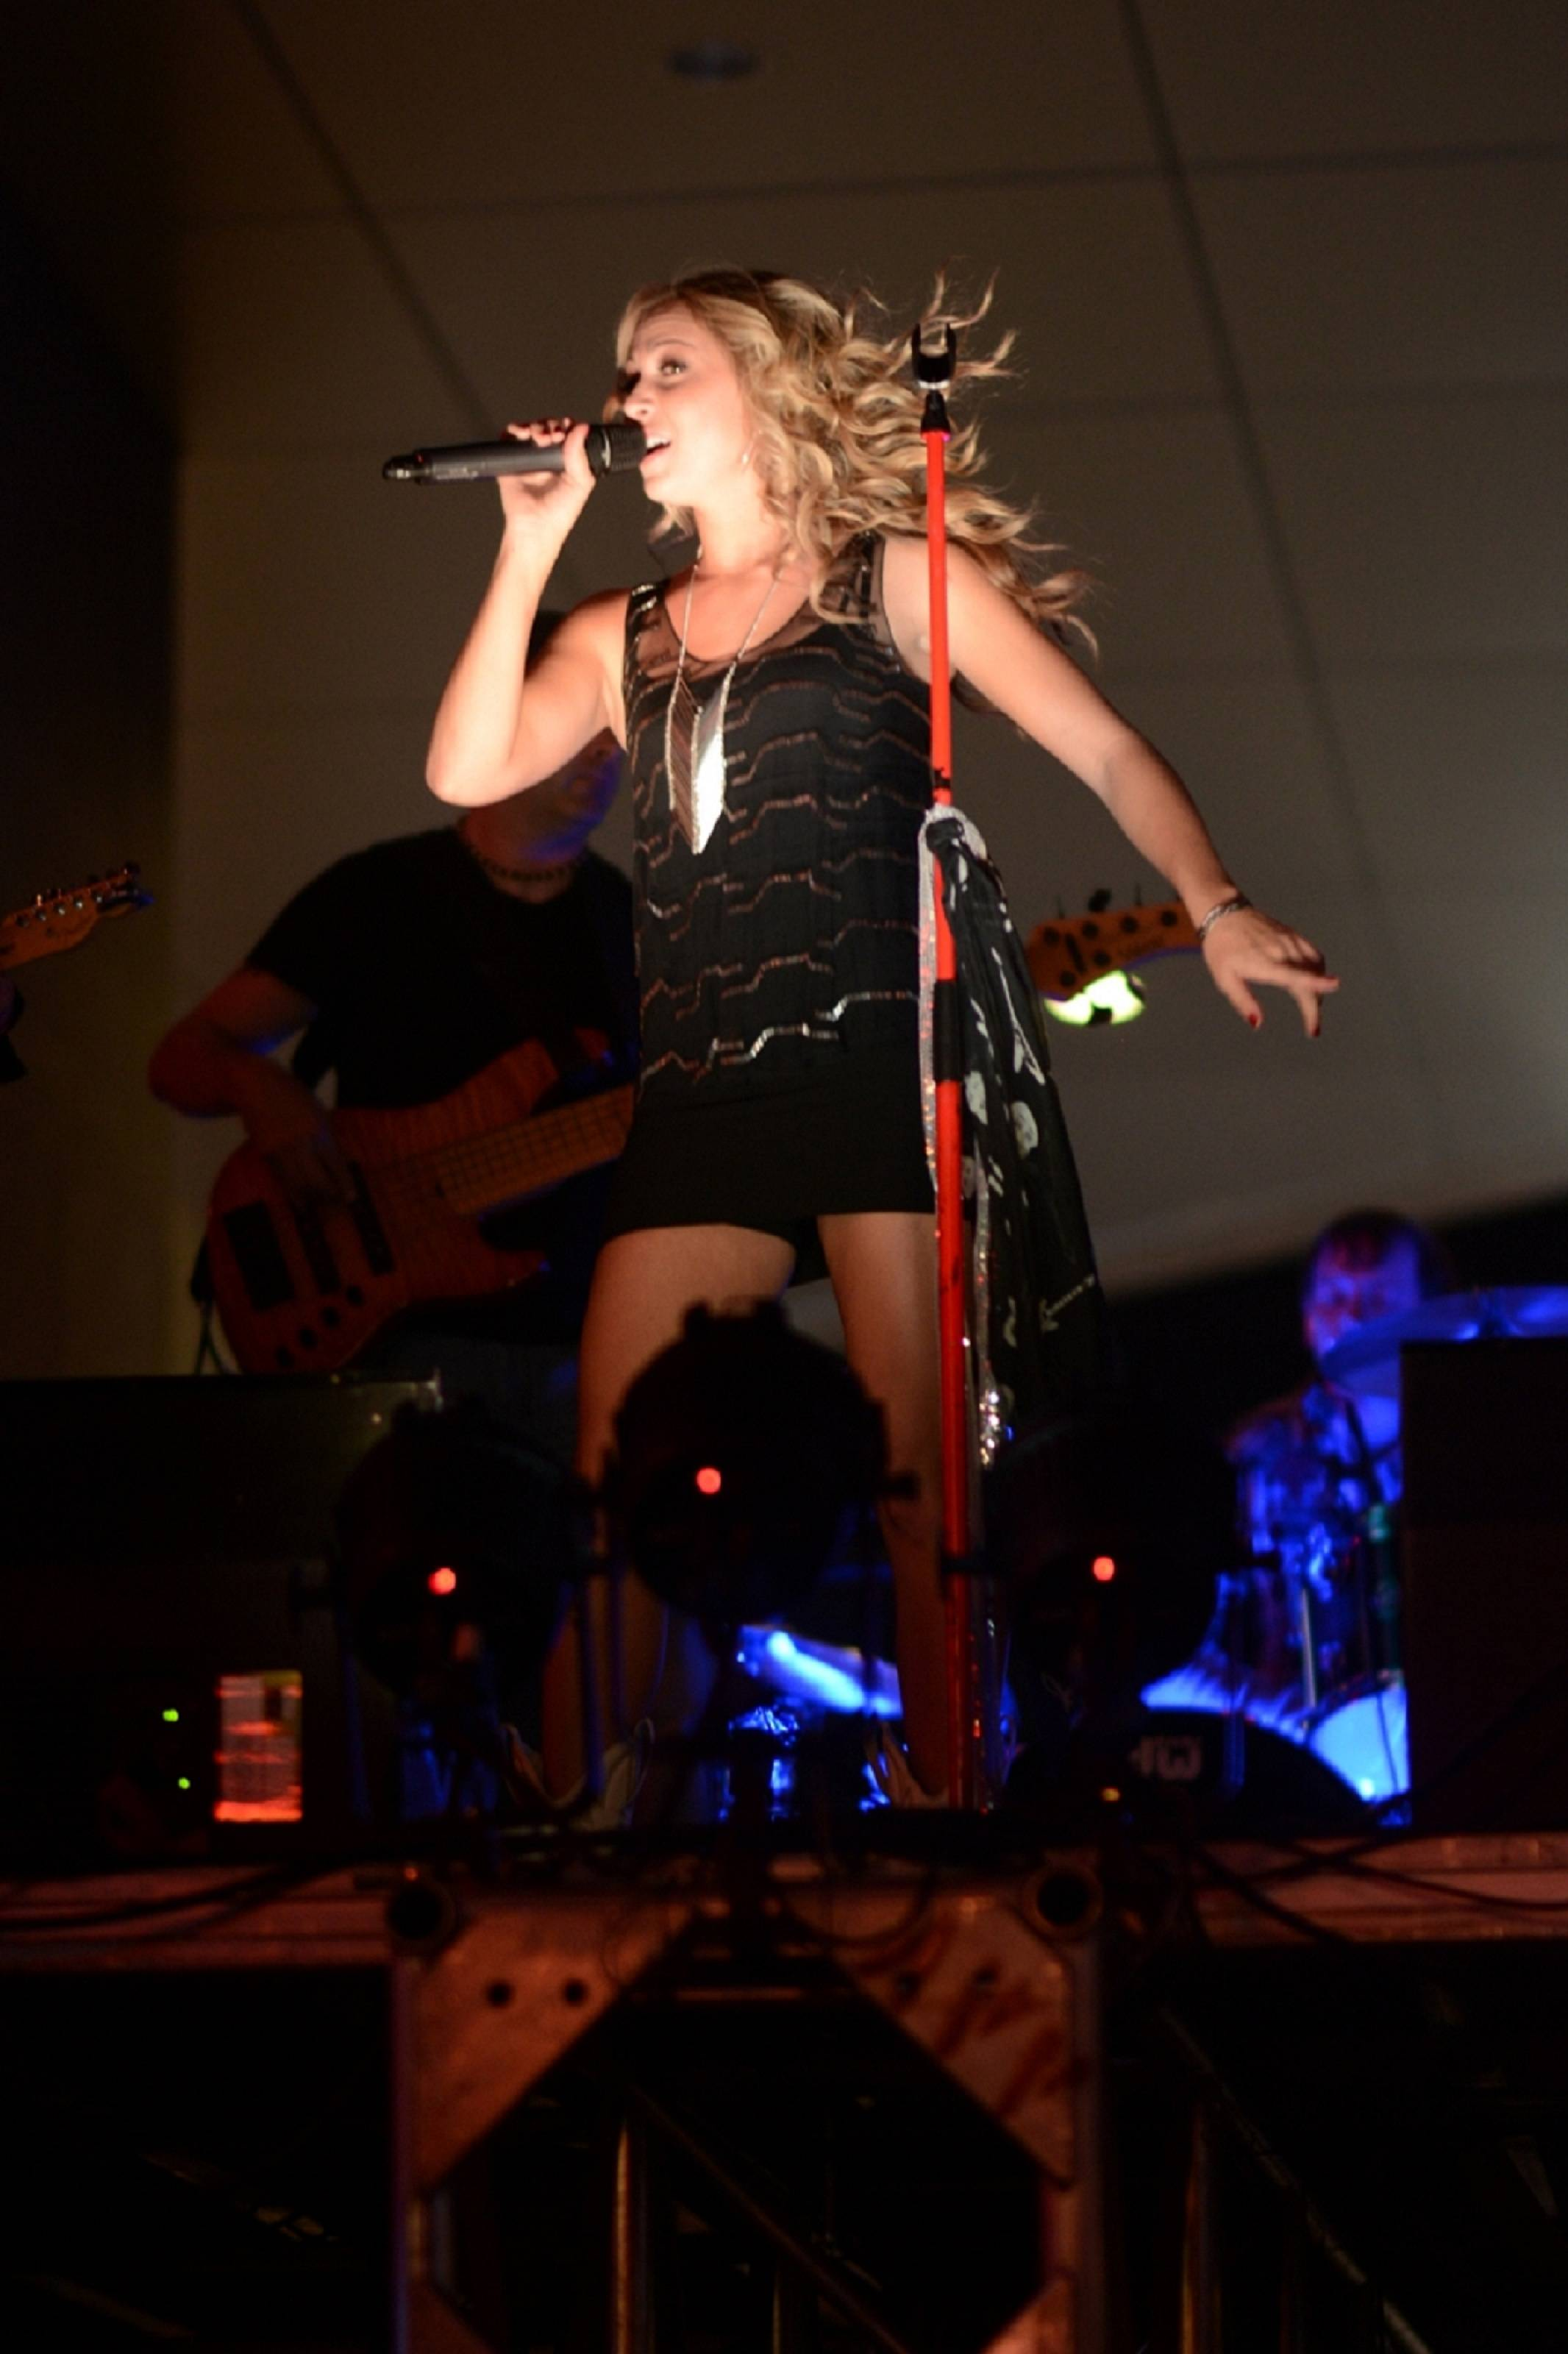 Morgan Leigh Performs at PBR Rock Bar for World Finals